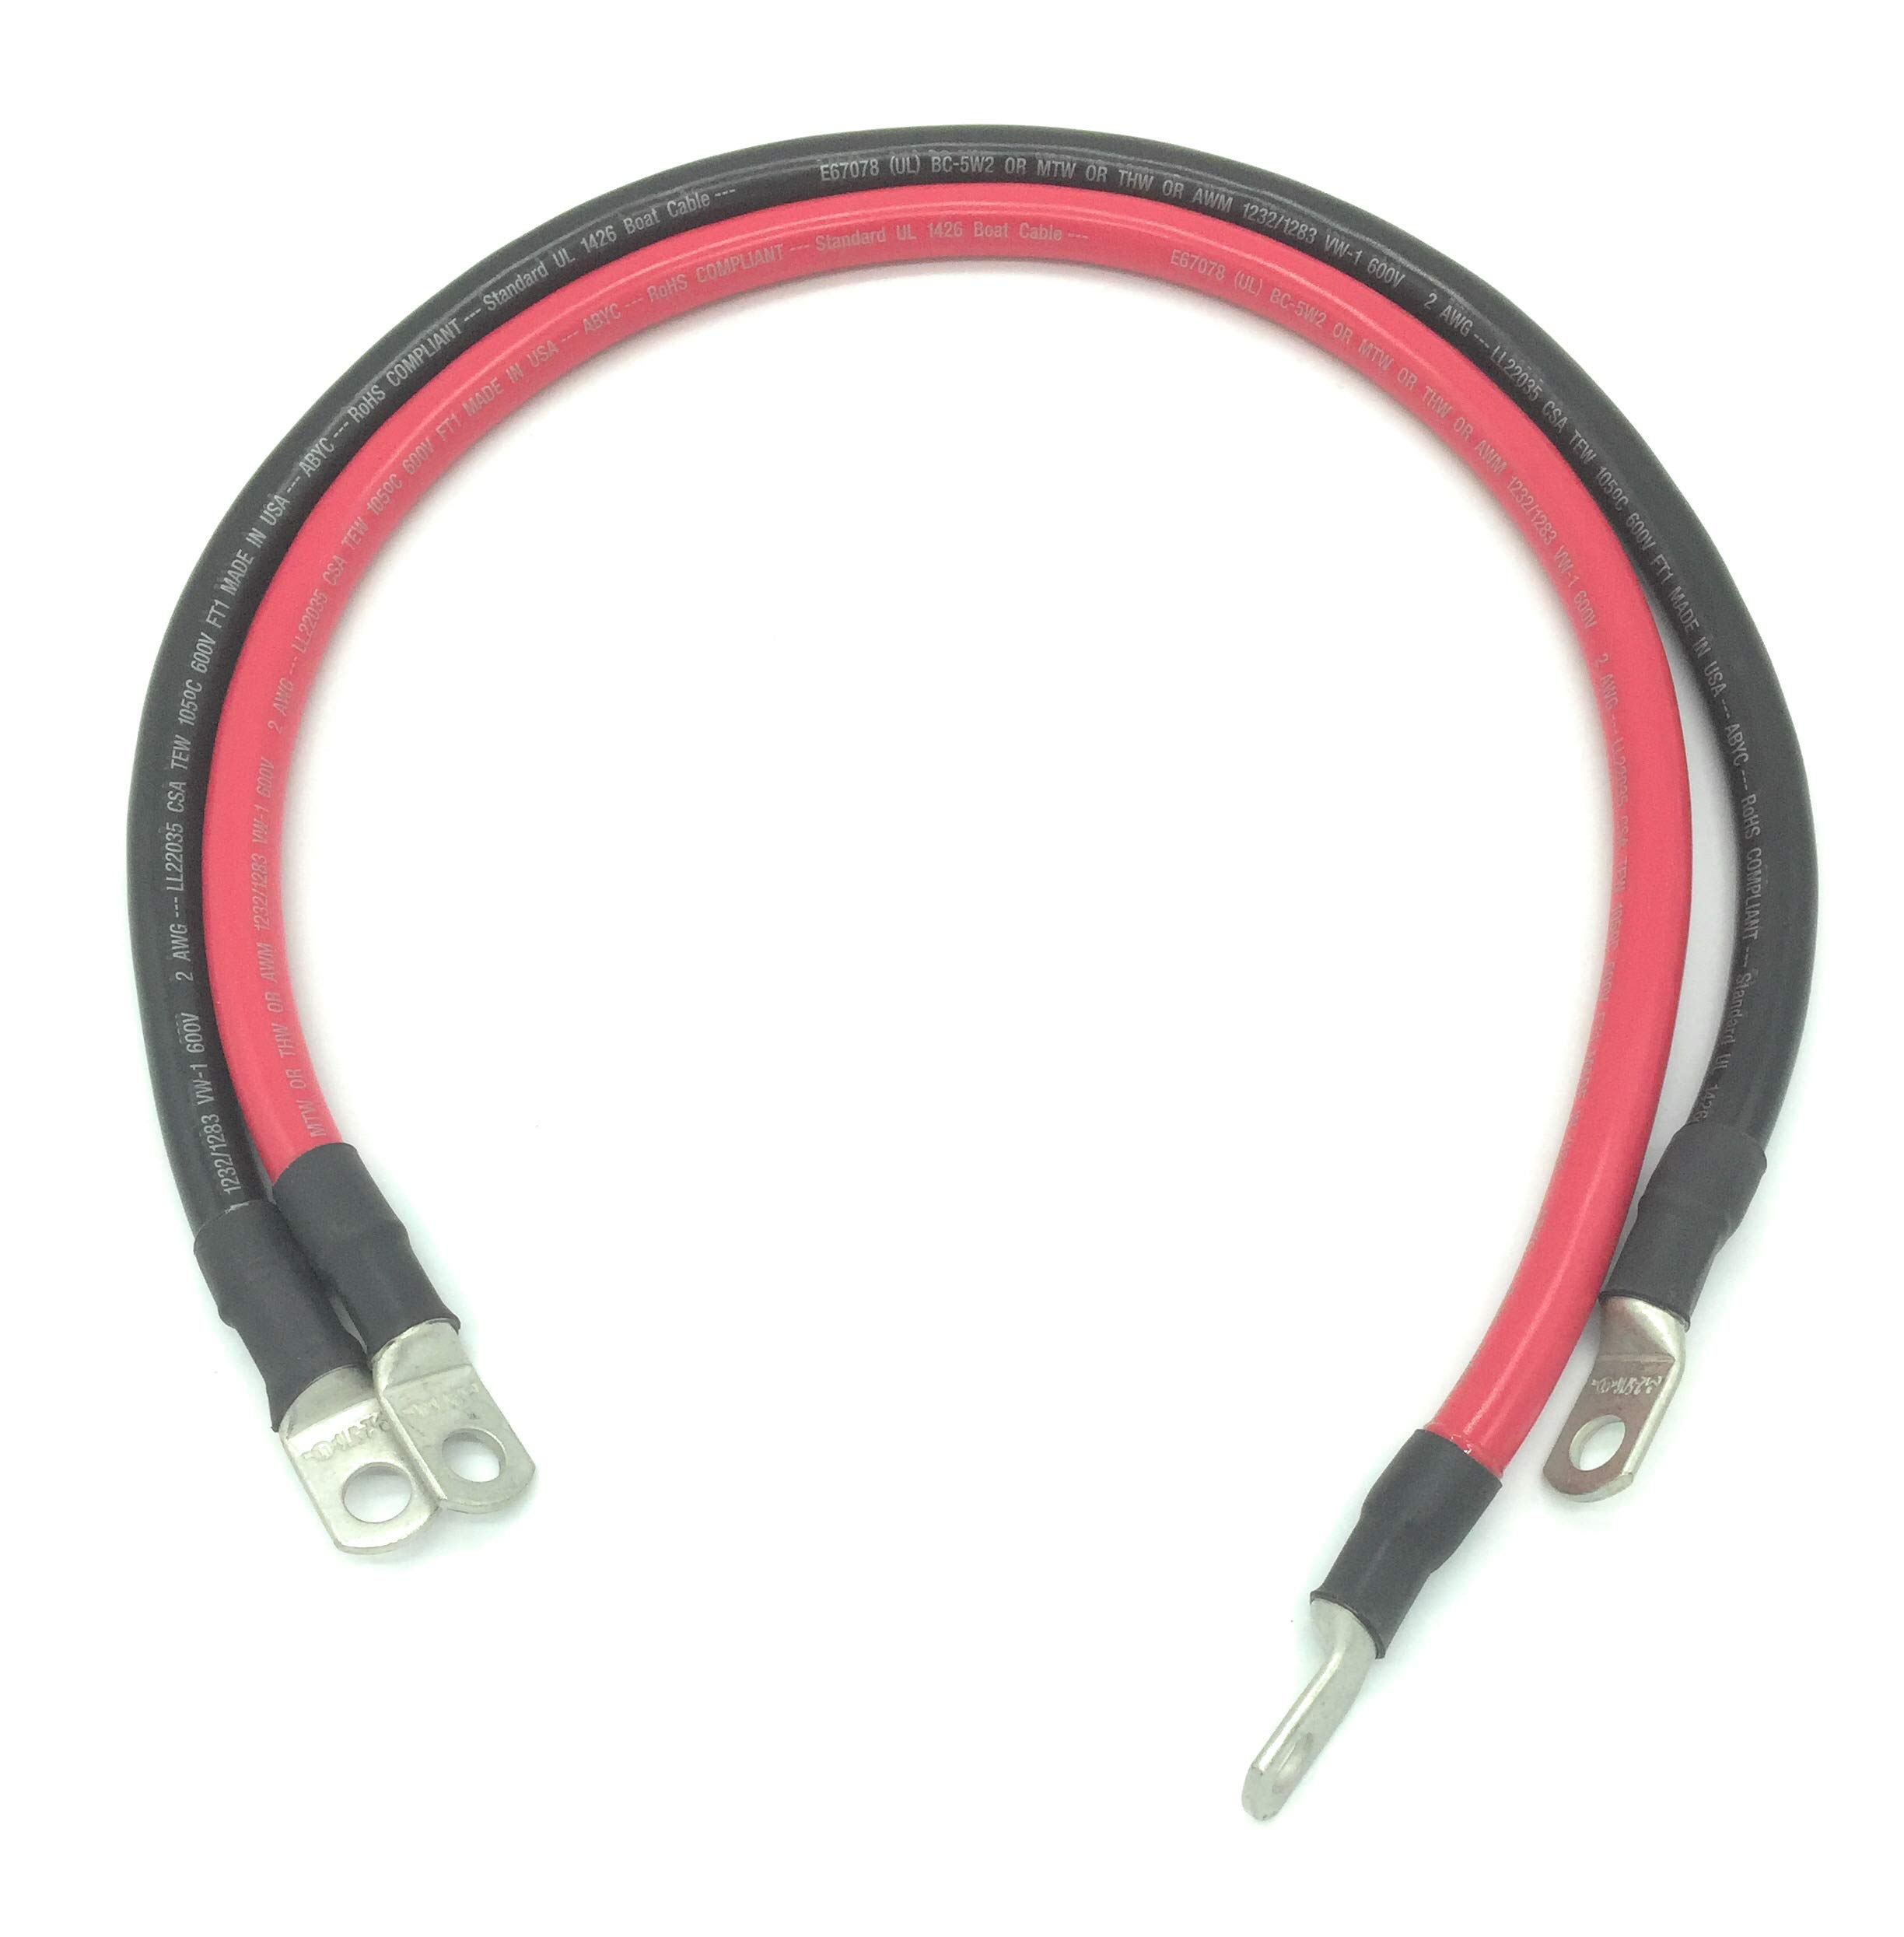 IEWC 2 AWG Marine Grade Boat Battery Cables (18) by IEWC